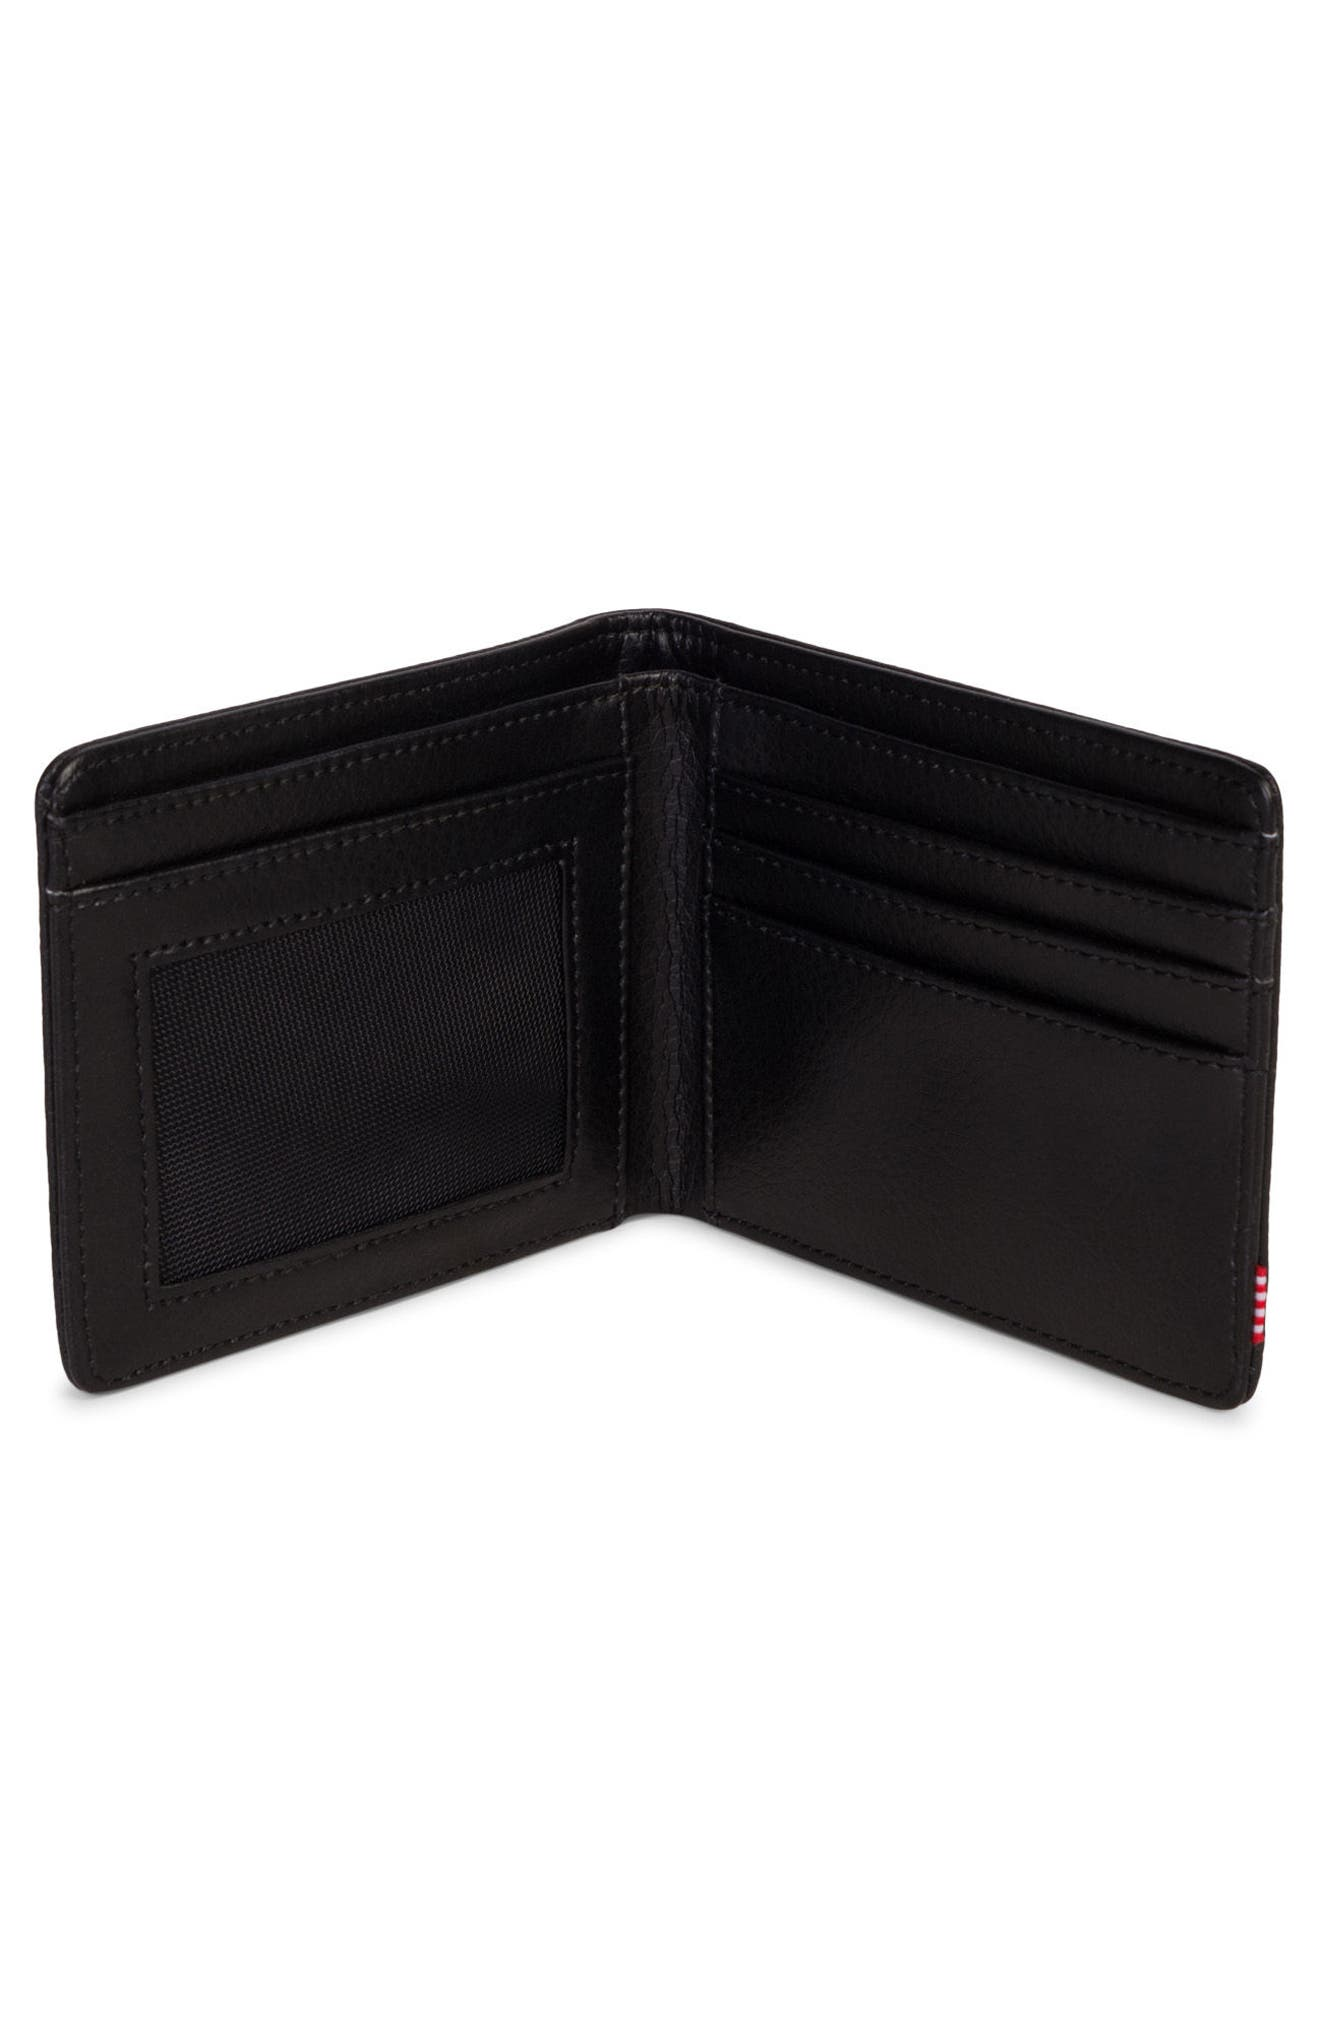 HERSCHEL SUPPLY CO., Hank Leather Wallet, Alternate thumbnail 2, color, BLACK PEBBLED LEATHER